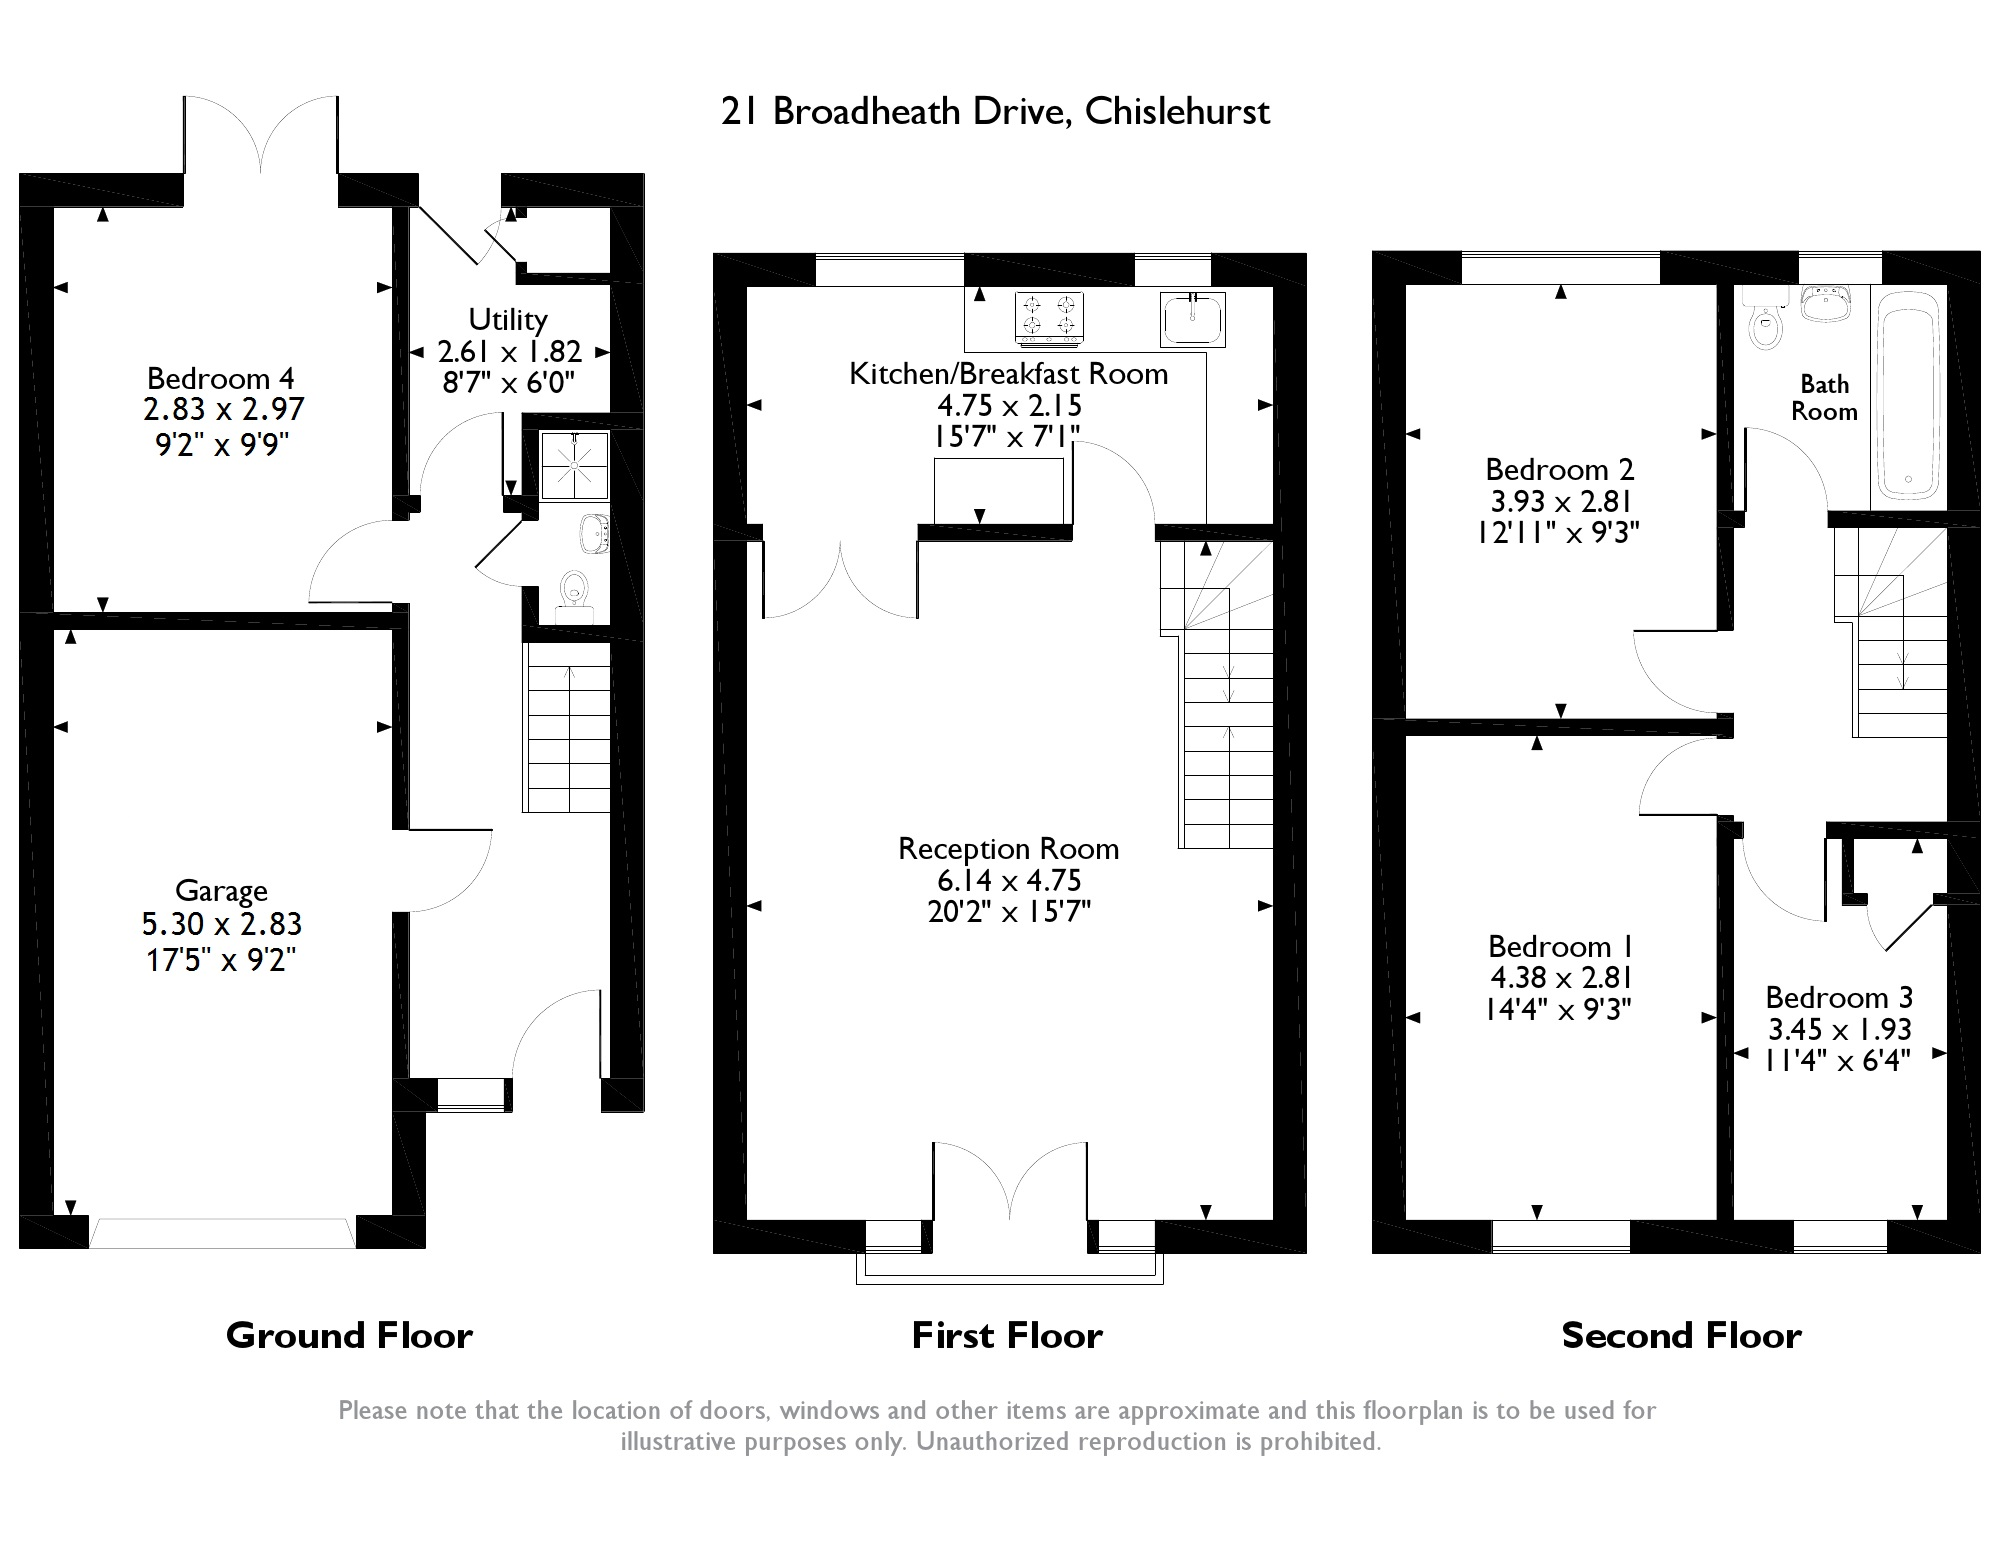 Broadheath Drive, Chislehurst floor plan